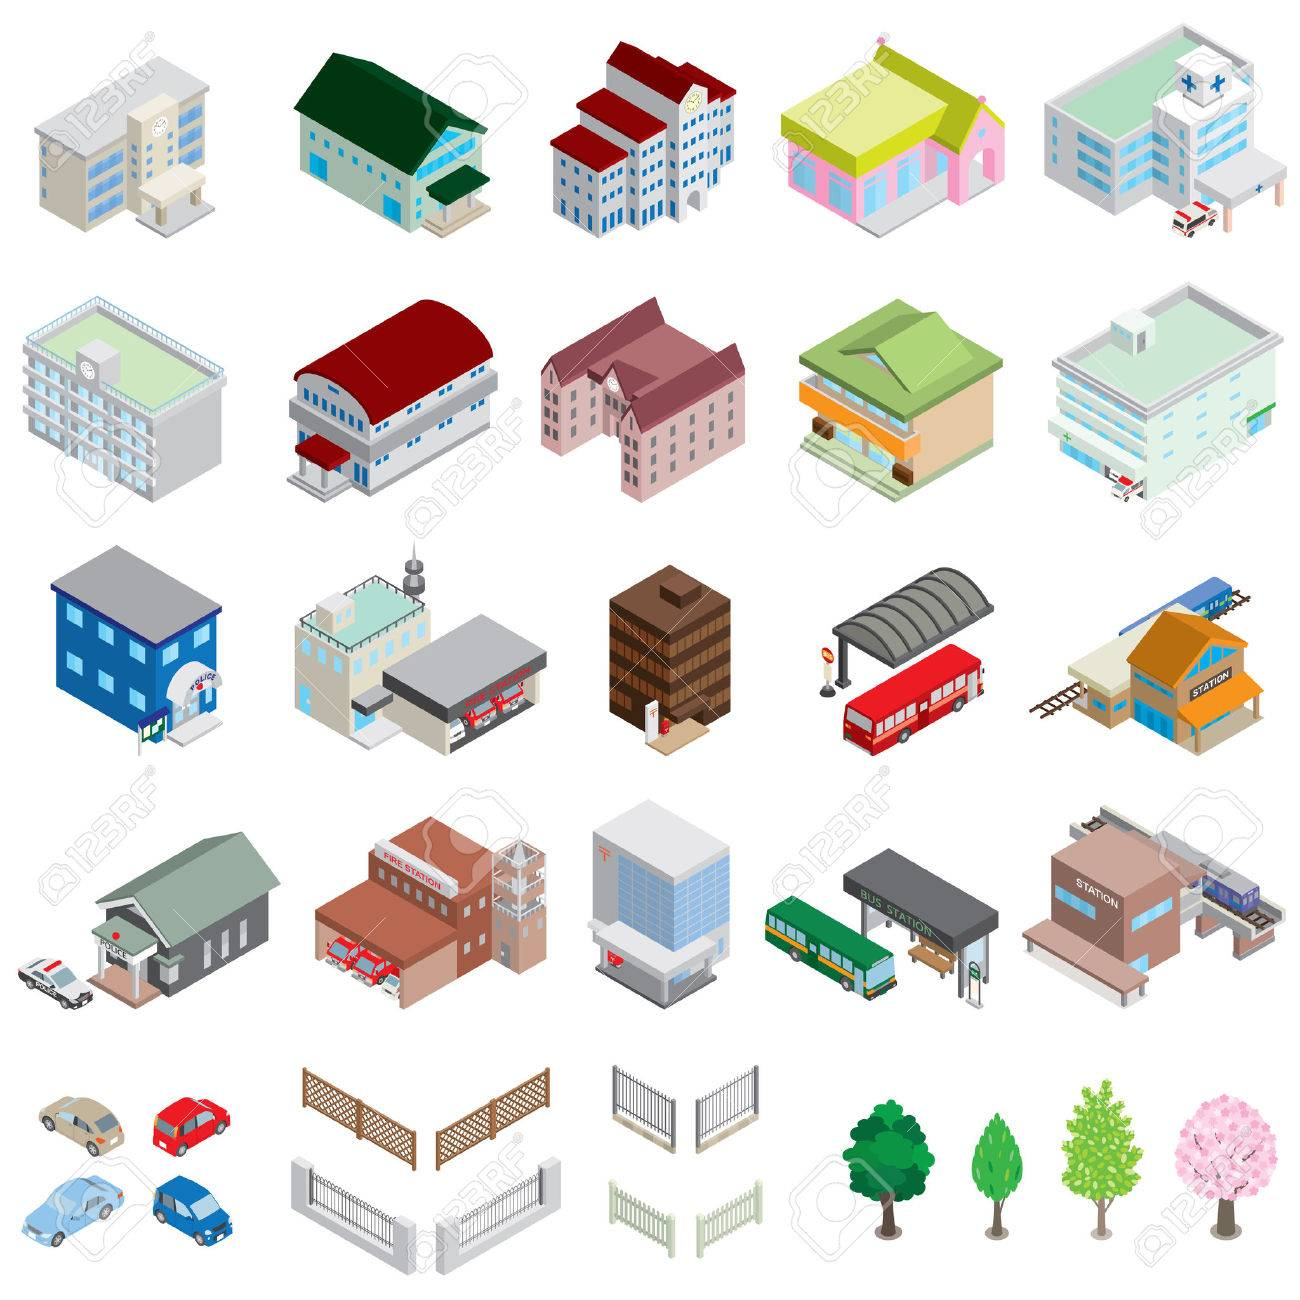 Various building / Solid figure - 35166553